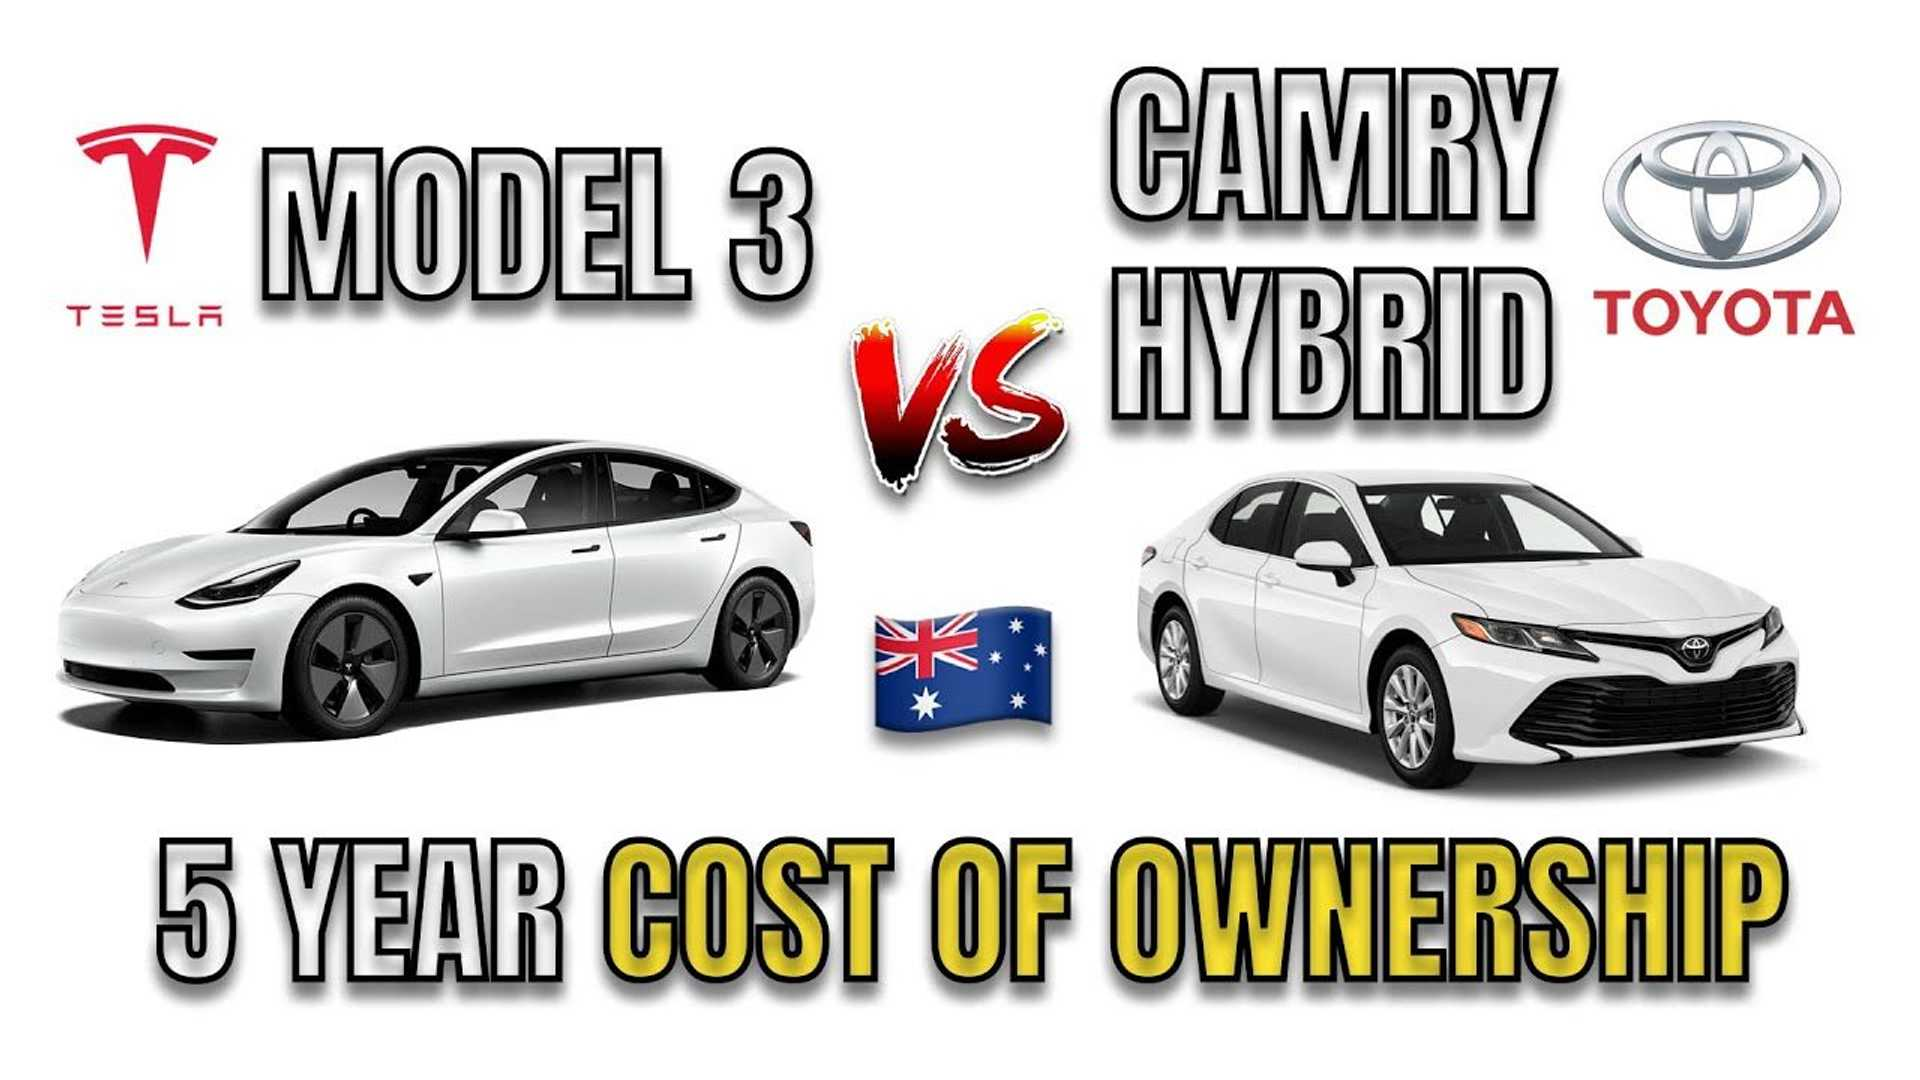 Tesla Model 3 Vs Toyota Camry Hybrid: Five-Year Cost Of Ownership